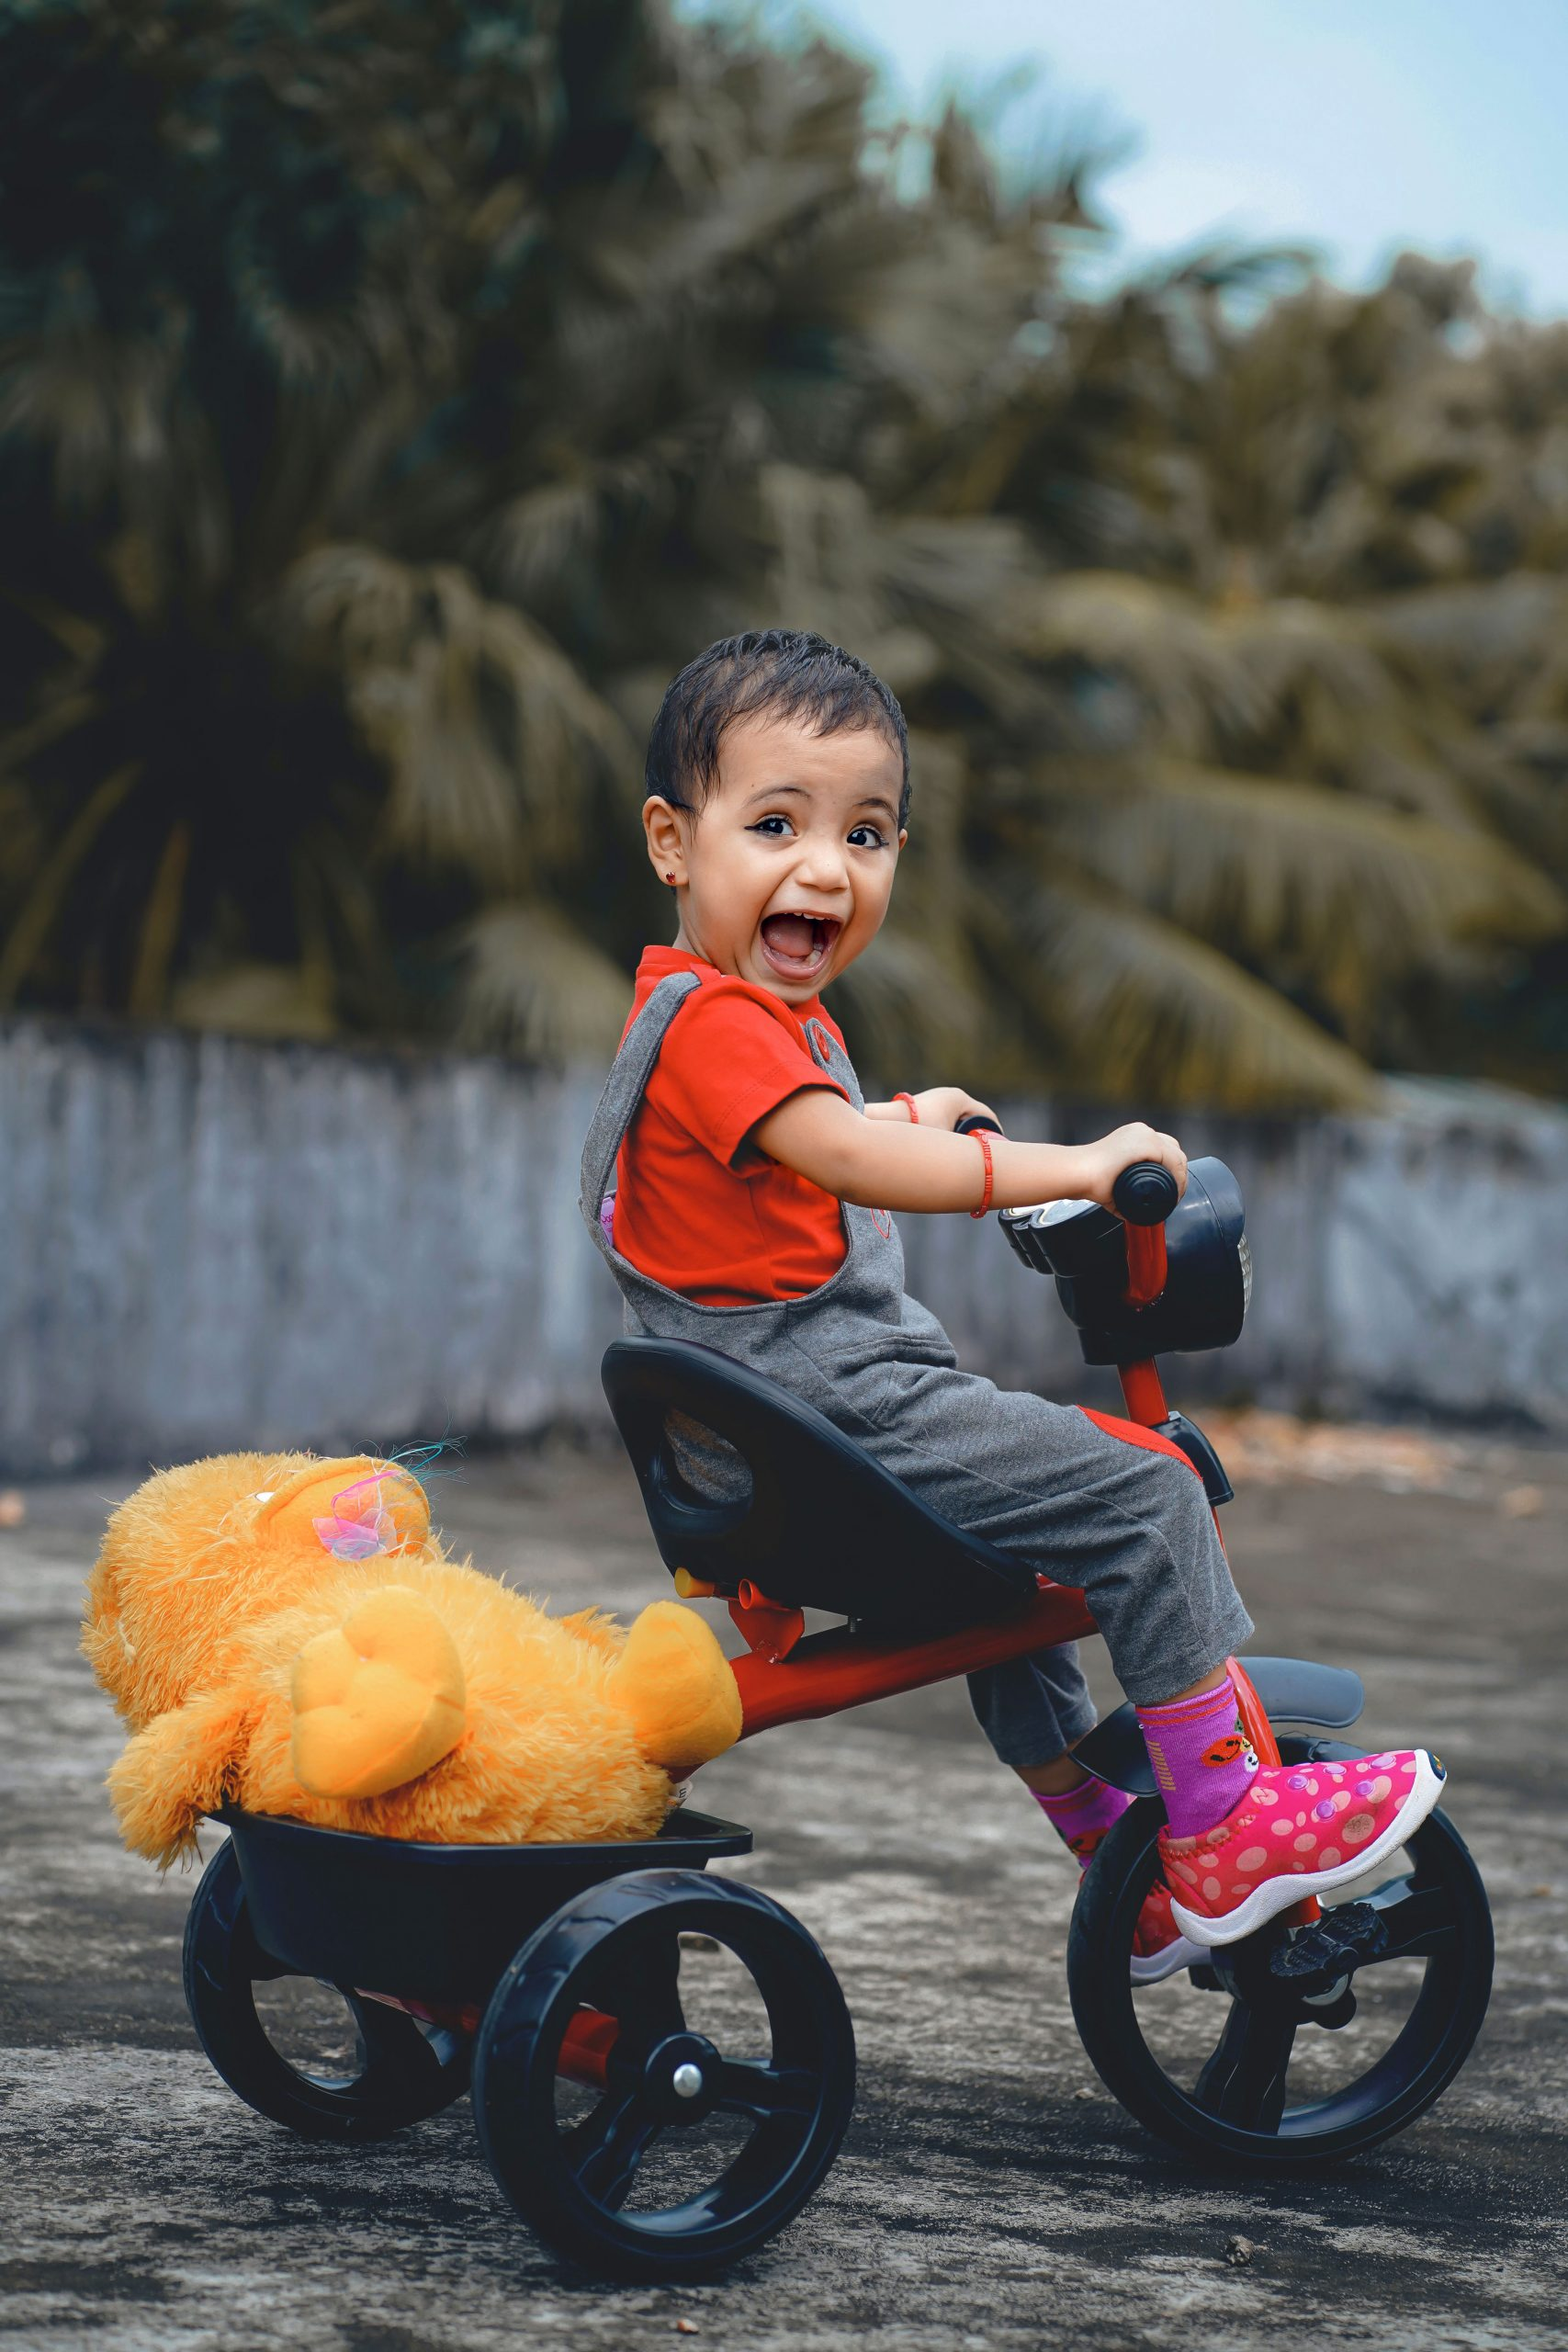 New Stylish Baby Boy Whatsapp Dp Images pictures photo download